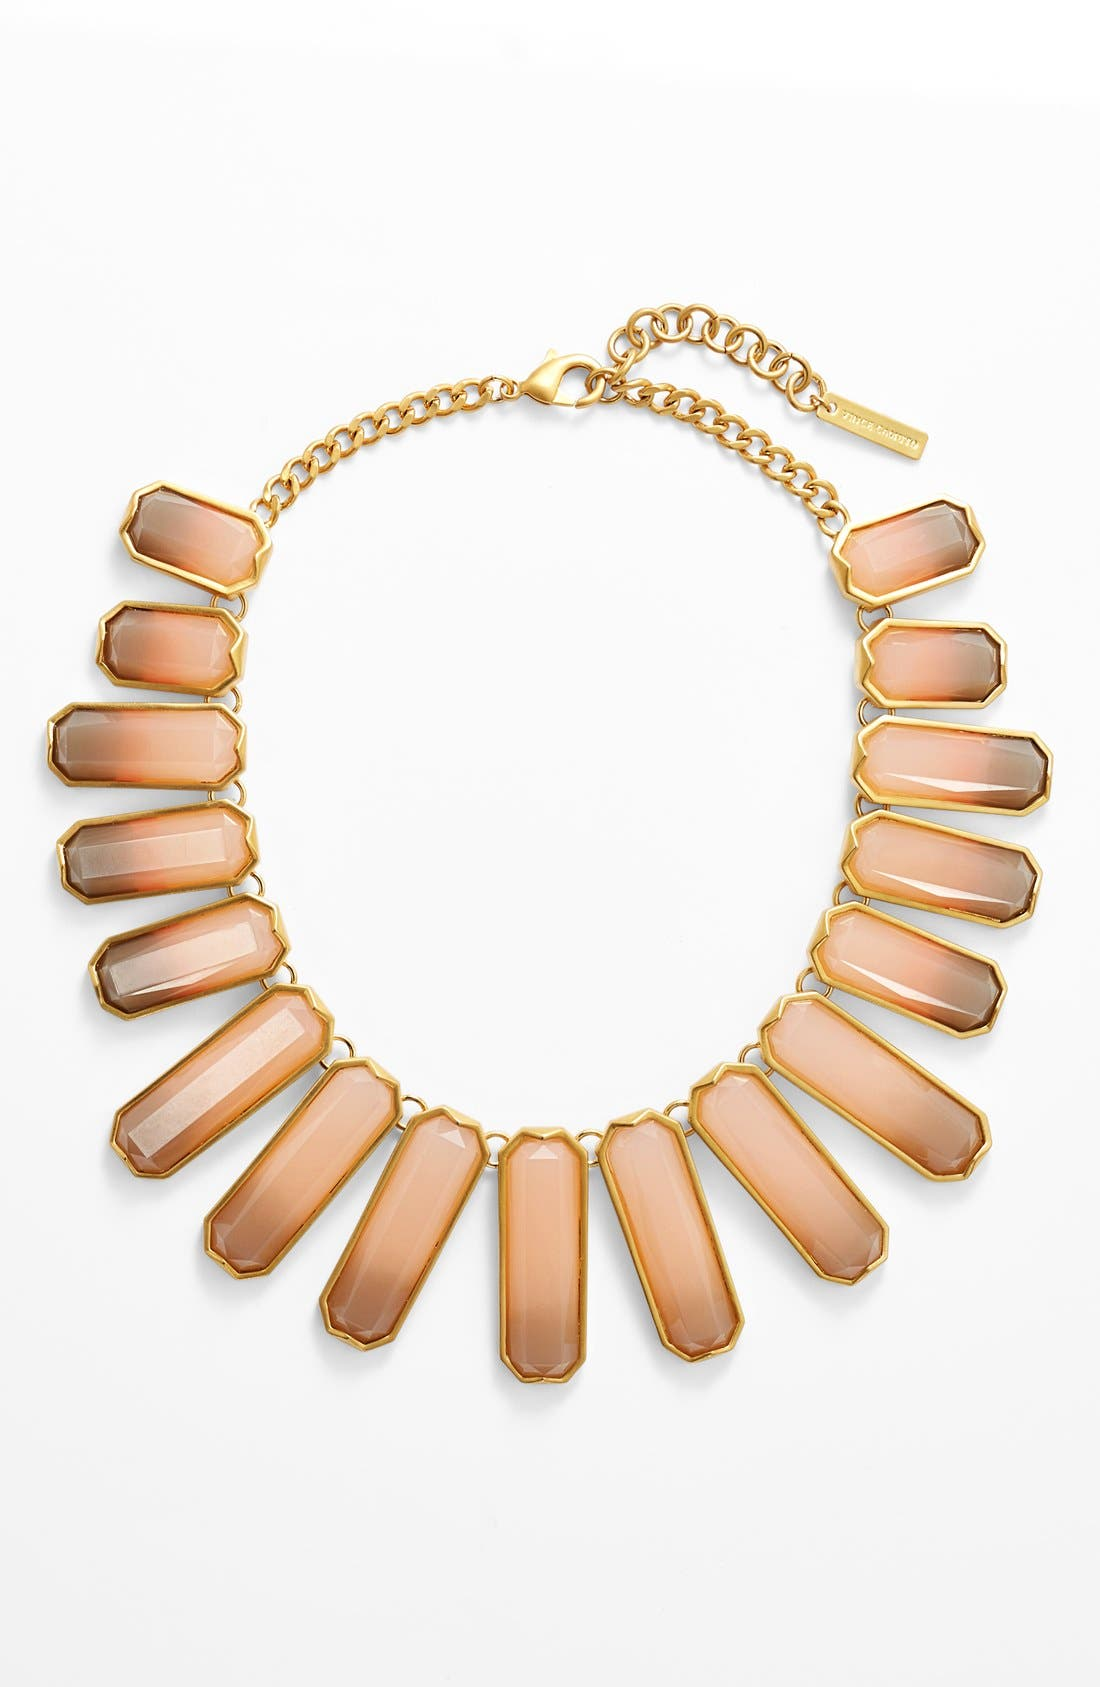 Alternate Image 1 Selected - Vince Camuto 'Ethereal Statement' Collar Necklace